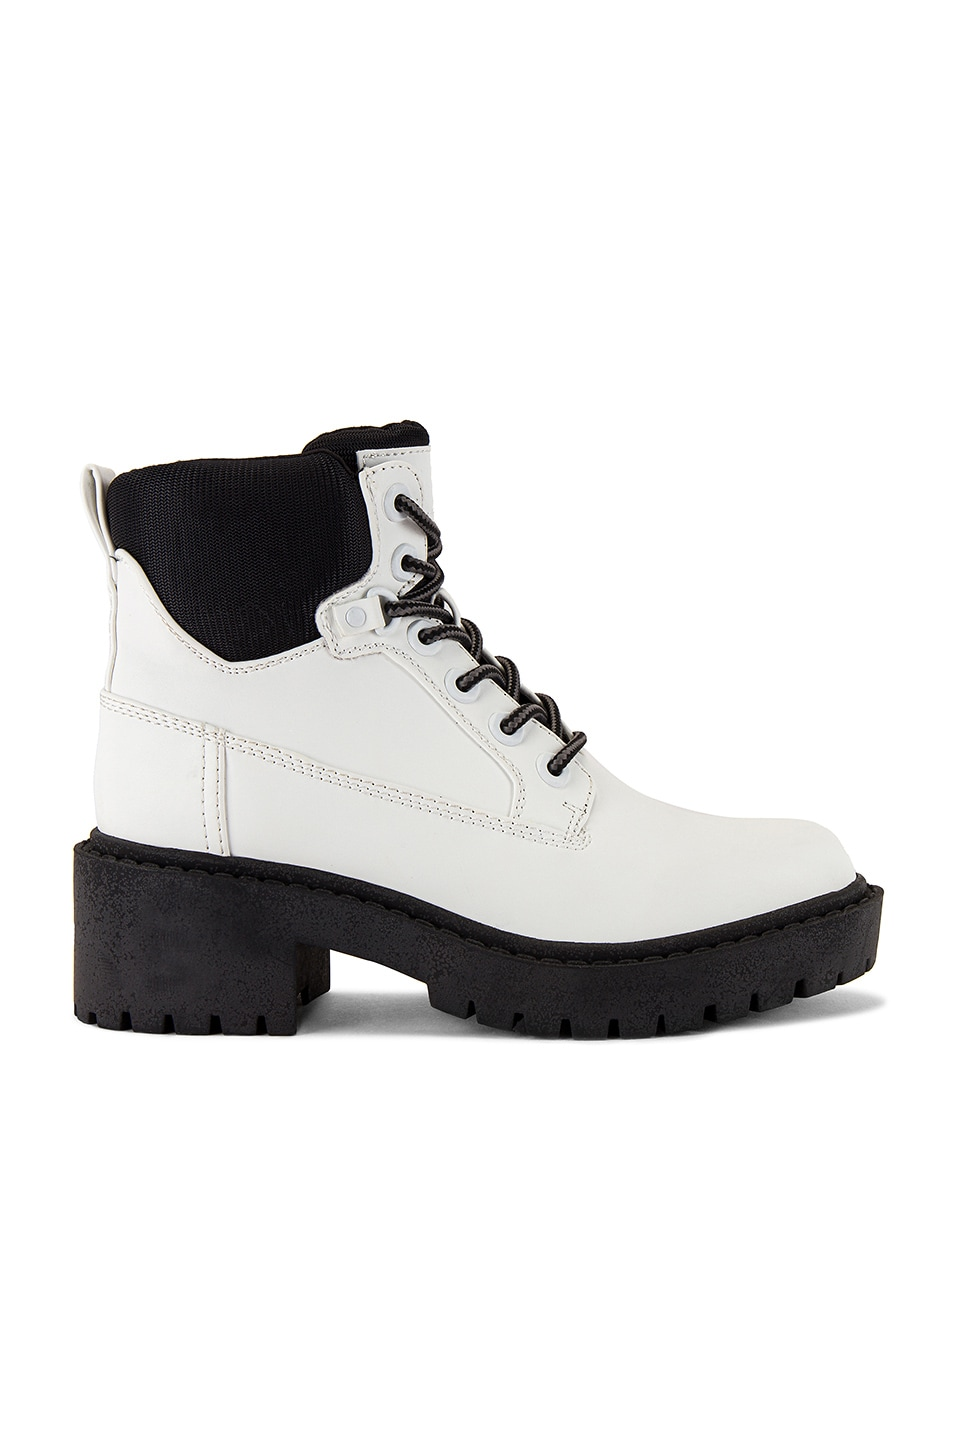 KENDALL + KYLIE Weston Boot in White & Black